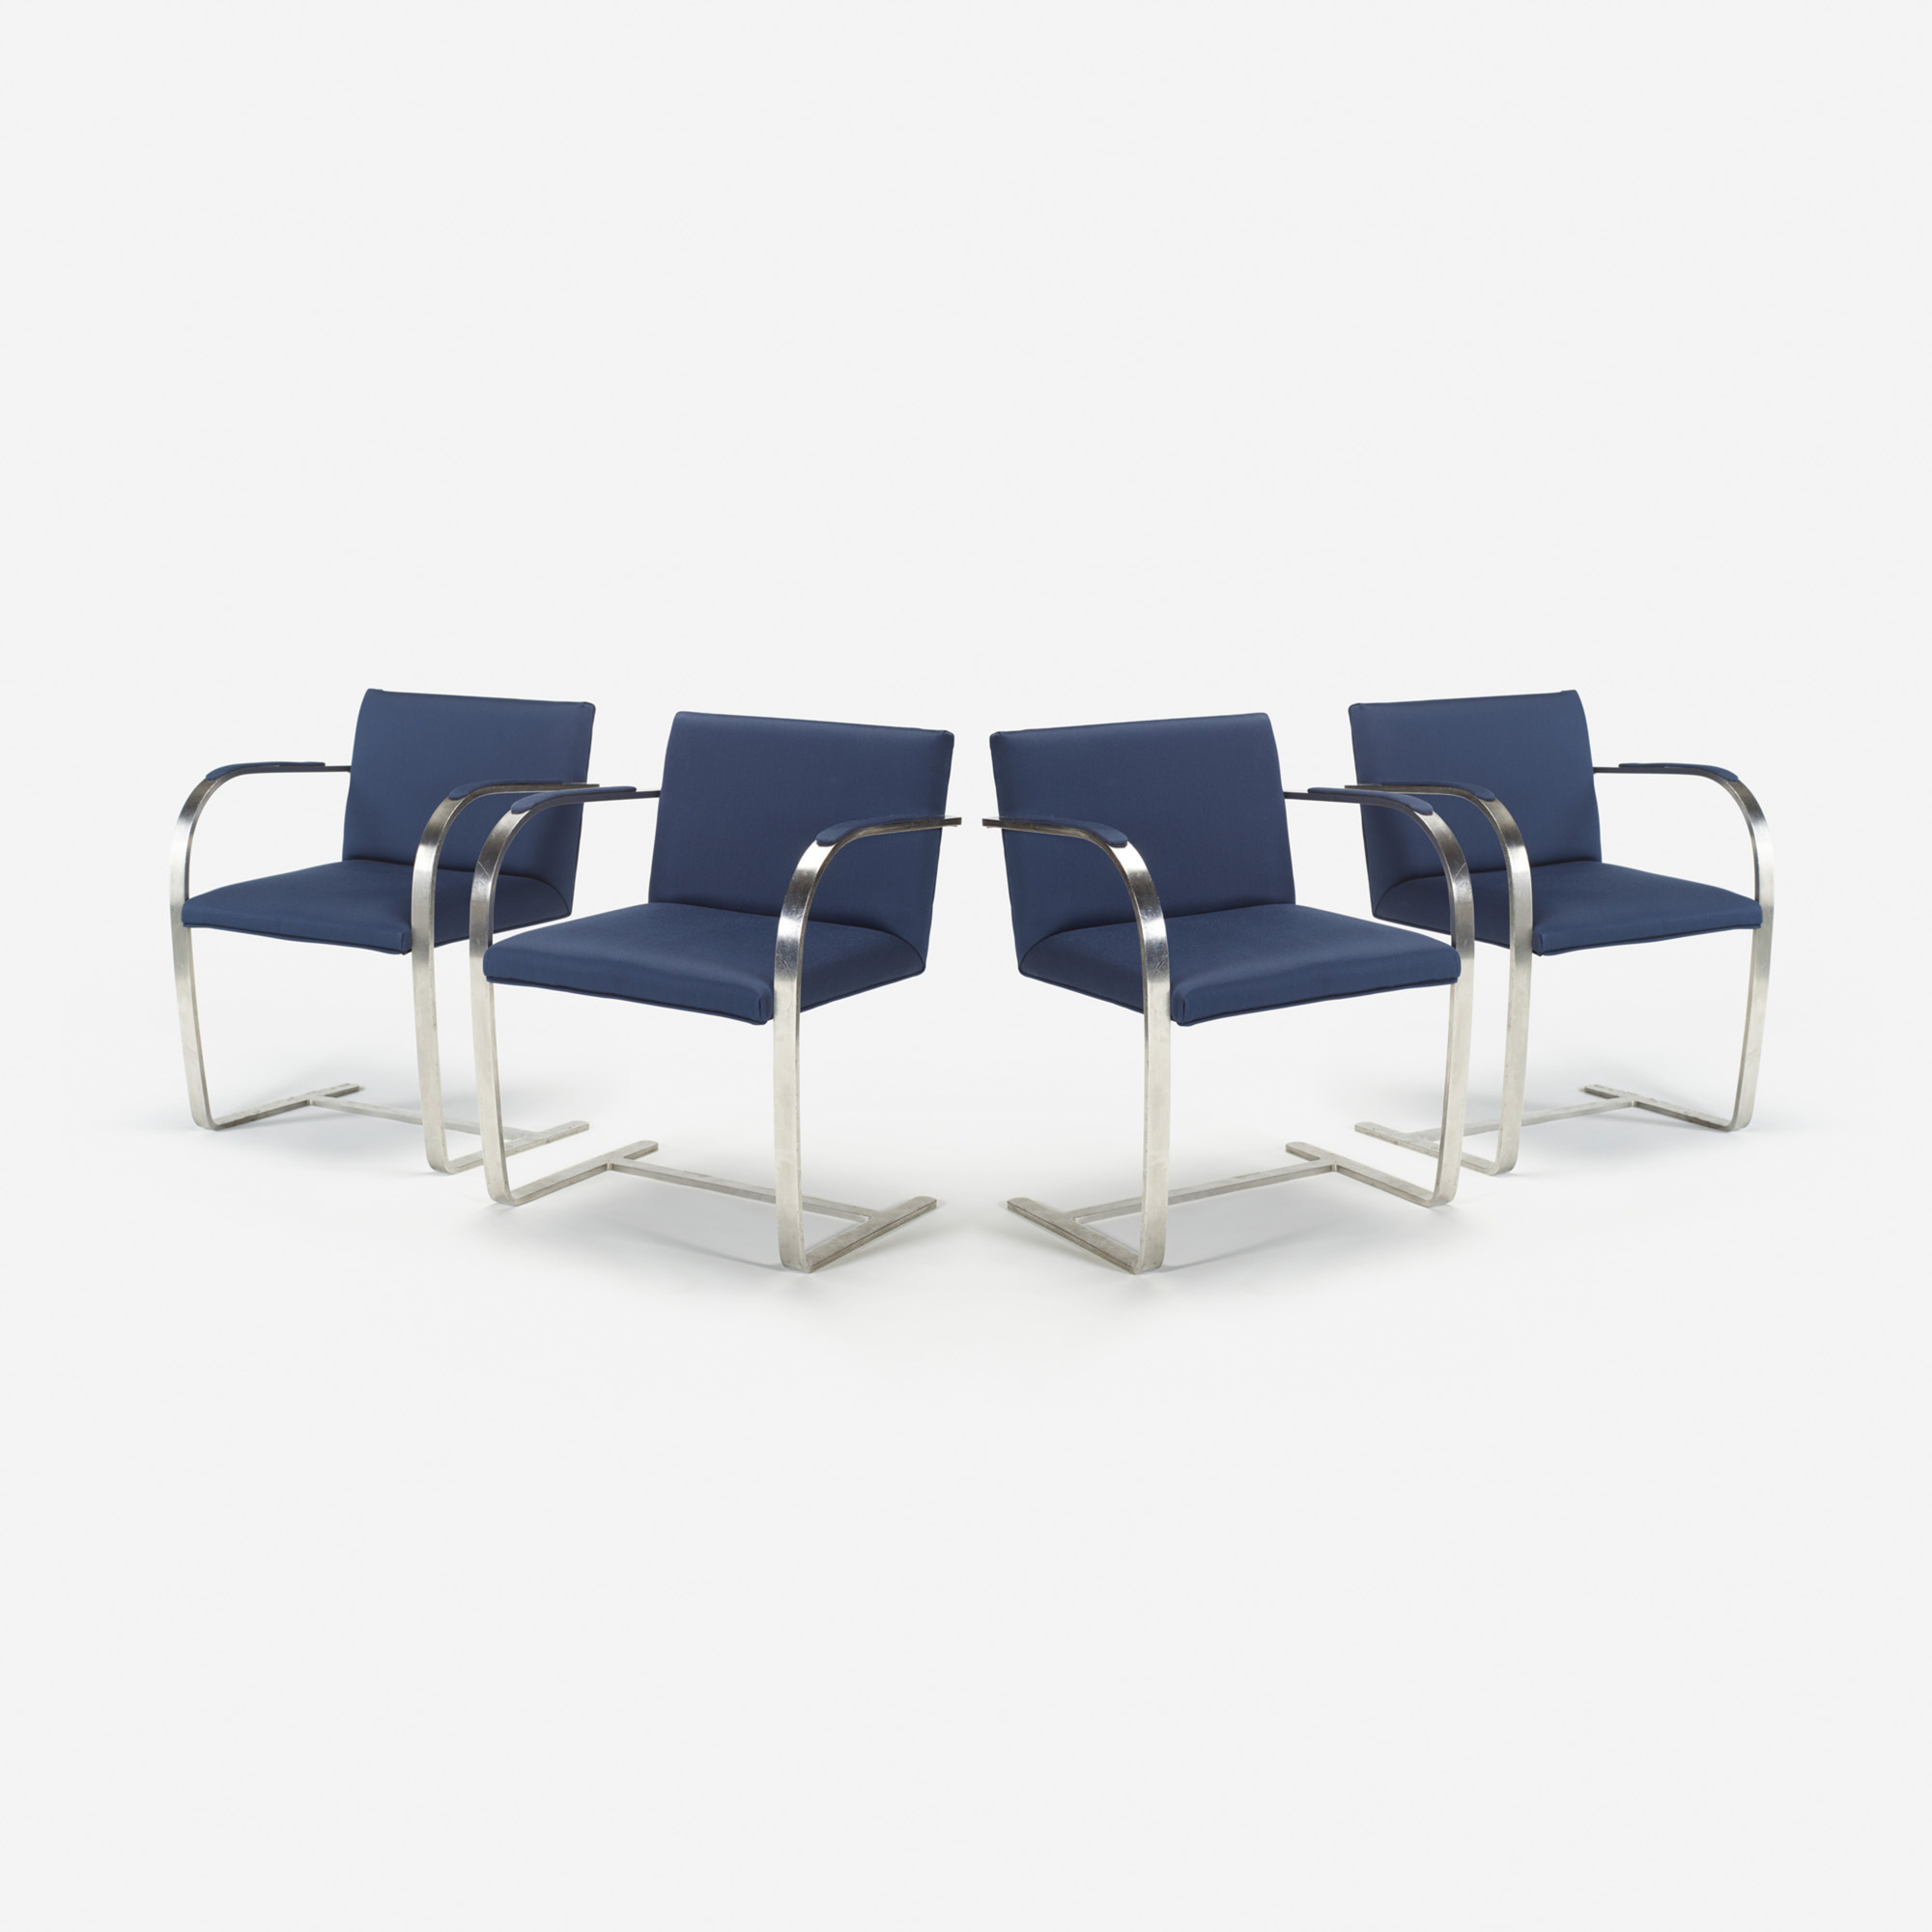 506: Ludwig Mies van der Rohe / Brno chairs from The Four Seasons, set of four (1 of 1)